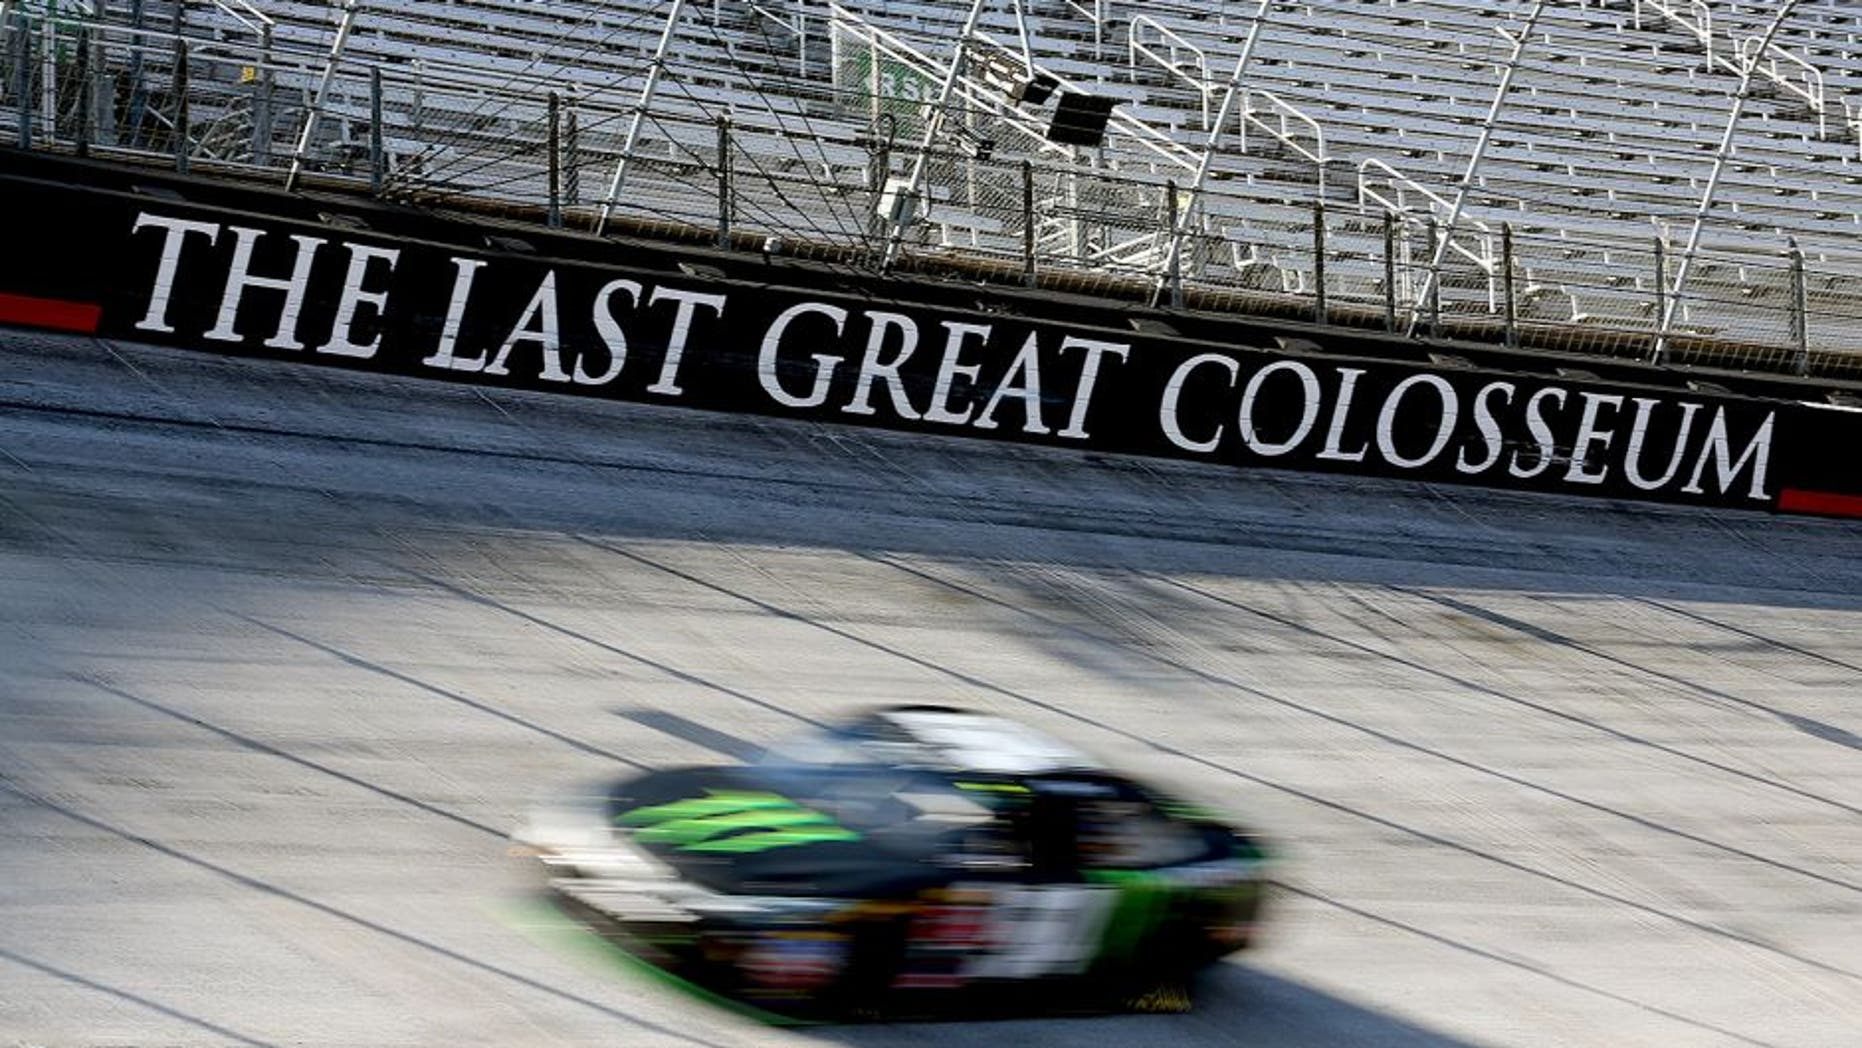 BRISTOL, TN - AUGUST 21: Kyle Busch, driver of the #54 Monster Energy Toyota, practices for the NASCAR XFINITY Series Food City 300 at Bristol Motor Speedway on August 21, 2015 in Bristol, Tennessee. (Photo by Matt Sullivan/NASCAR via Getty Images)